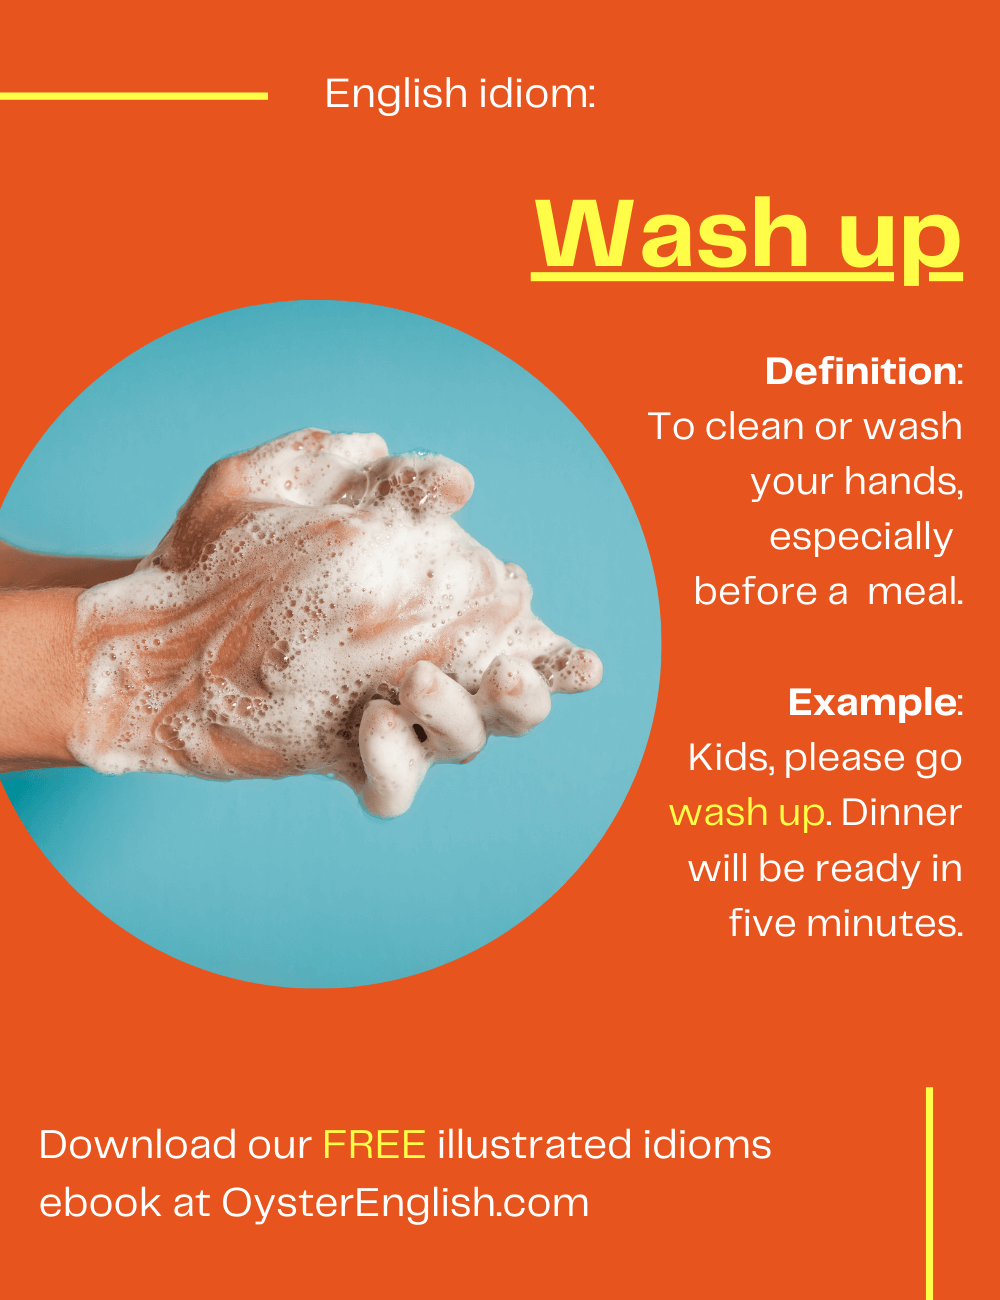 Image of someone washing their hands. Definition of the idiom wash up (to wash your hands, especially before dinner): Kids, please go wash up. Dinner will be ready in 5 minutes.